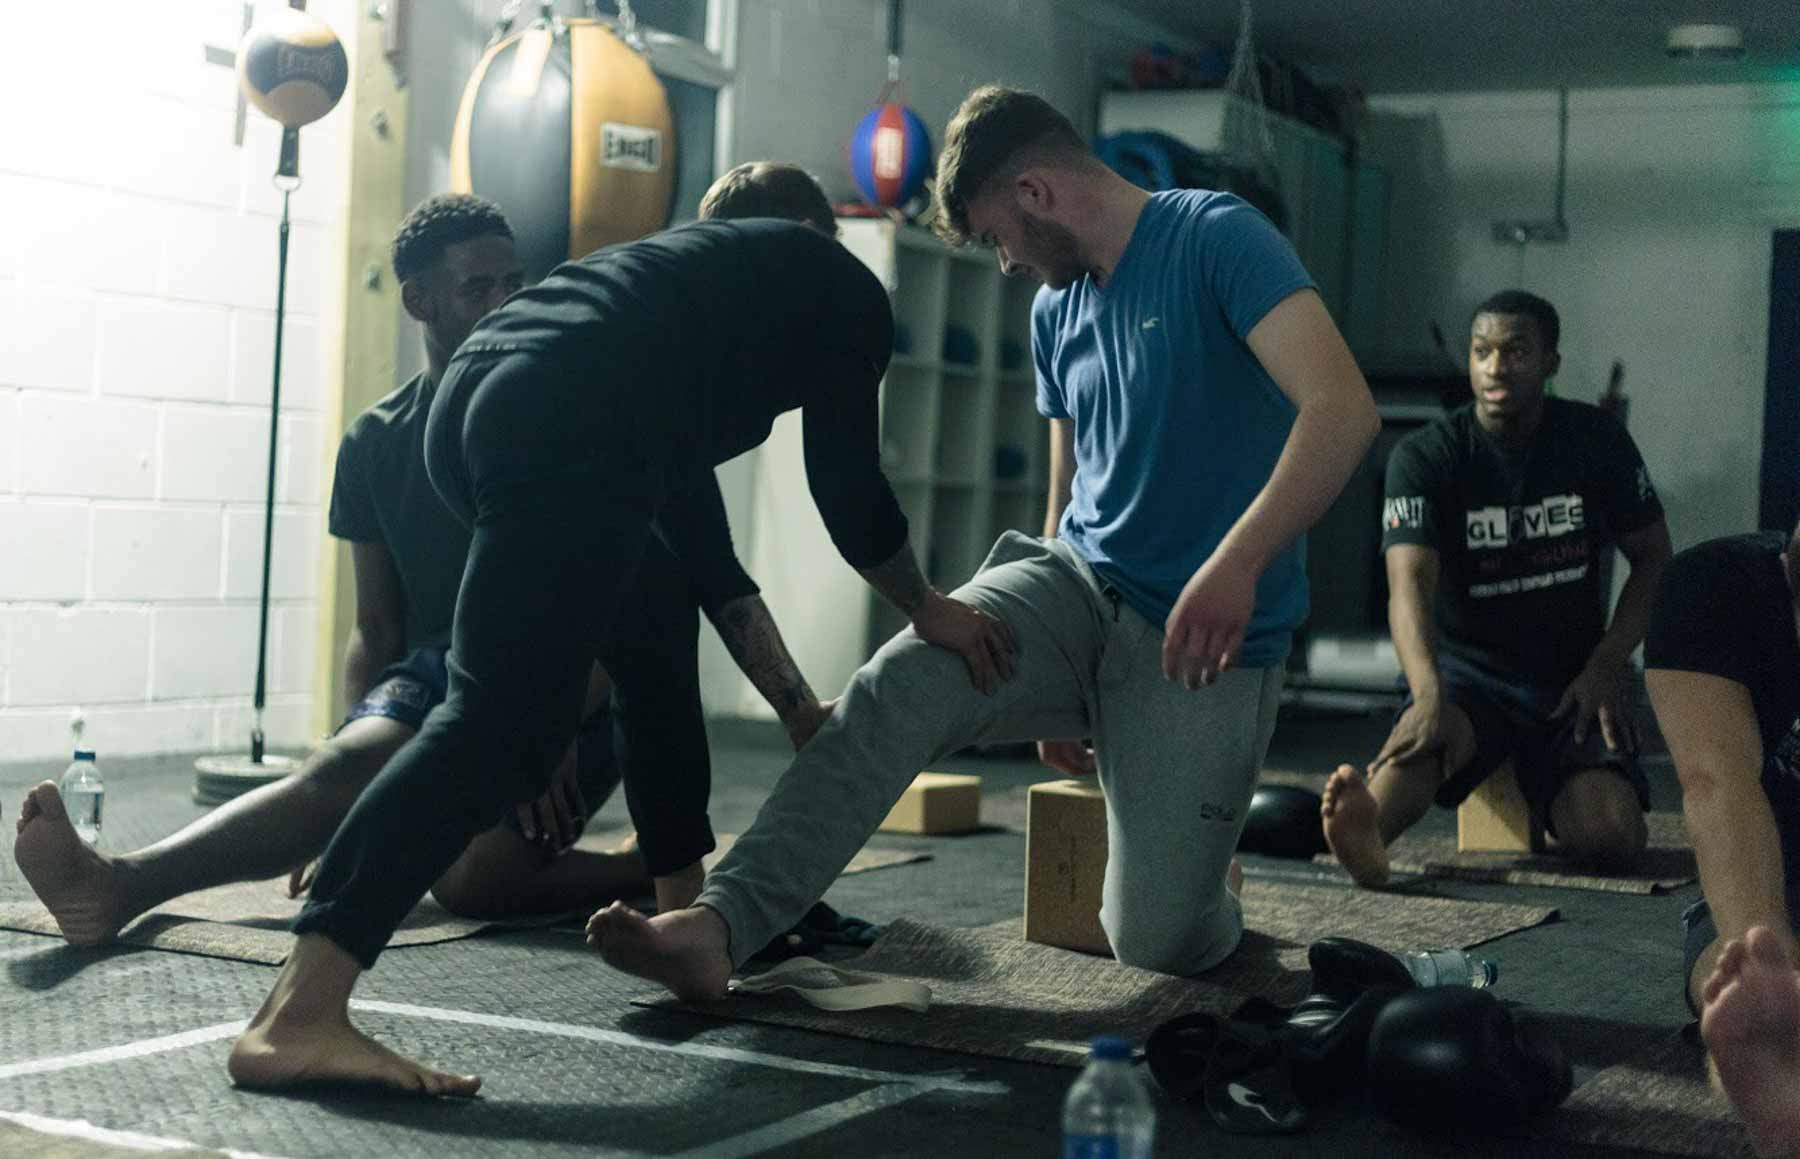 Man assisting a yoga student in a boxing gym